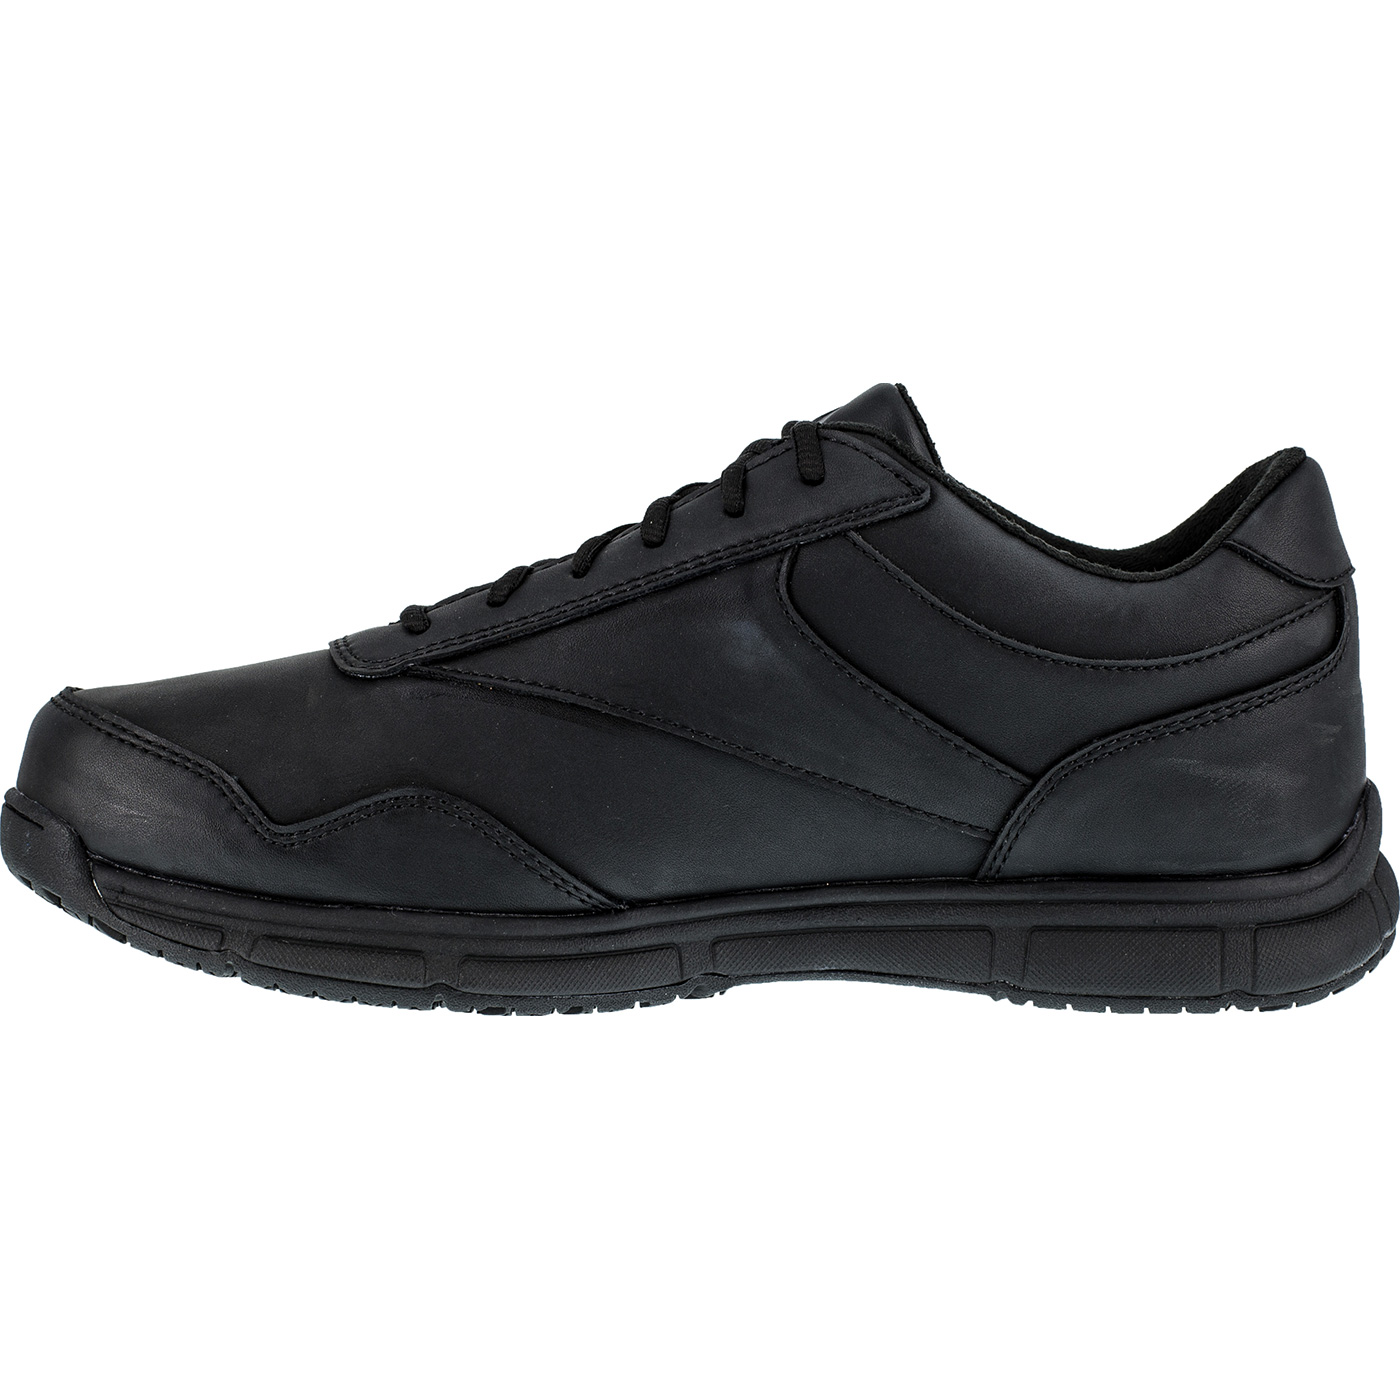 0d56b27d9 Loading zoom. Reebok Jorie LT Men s Slip Resistant Electrical Hazard  Athletic Oxford